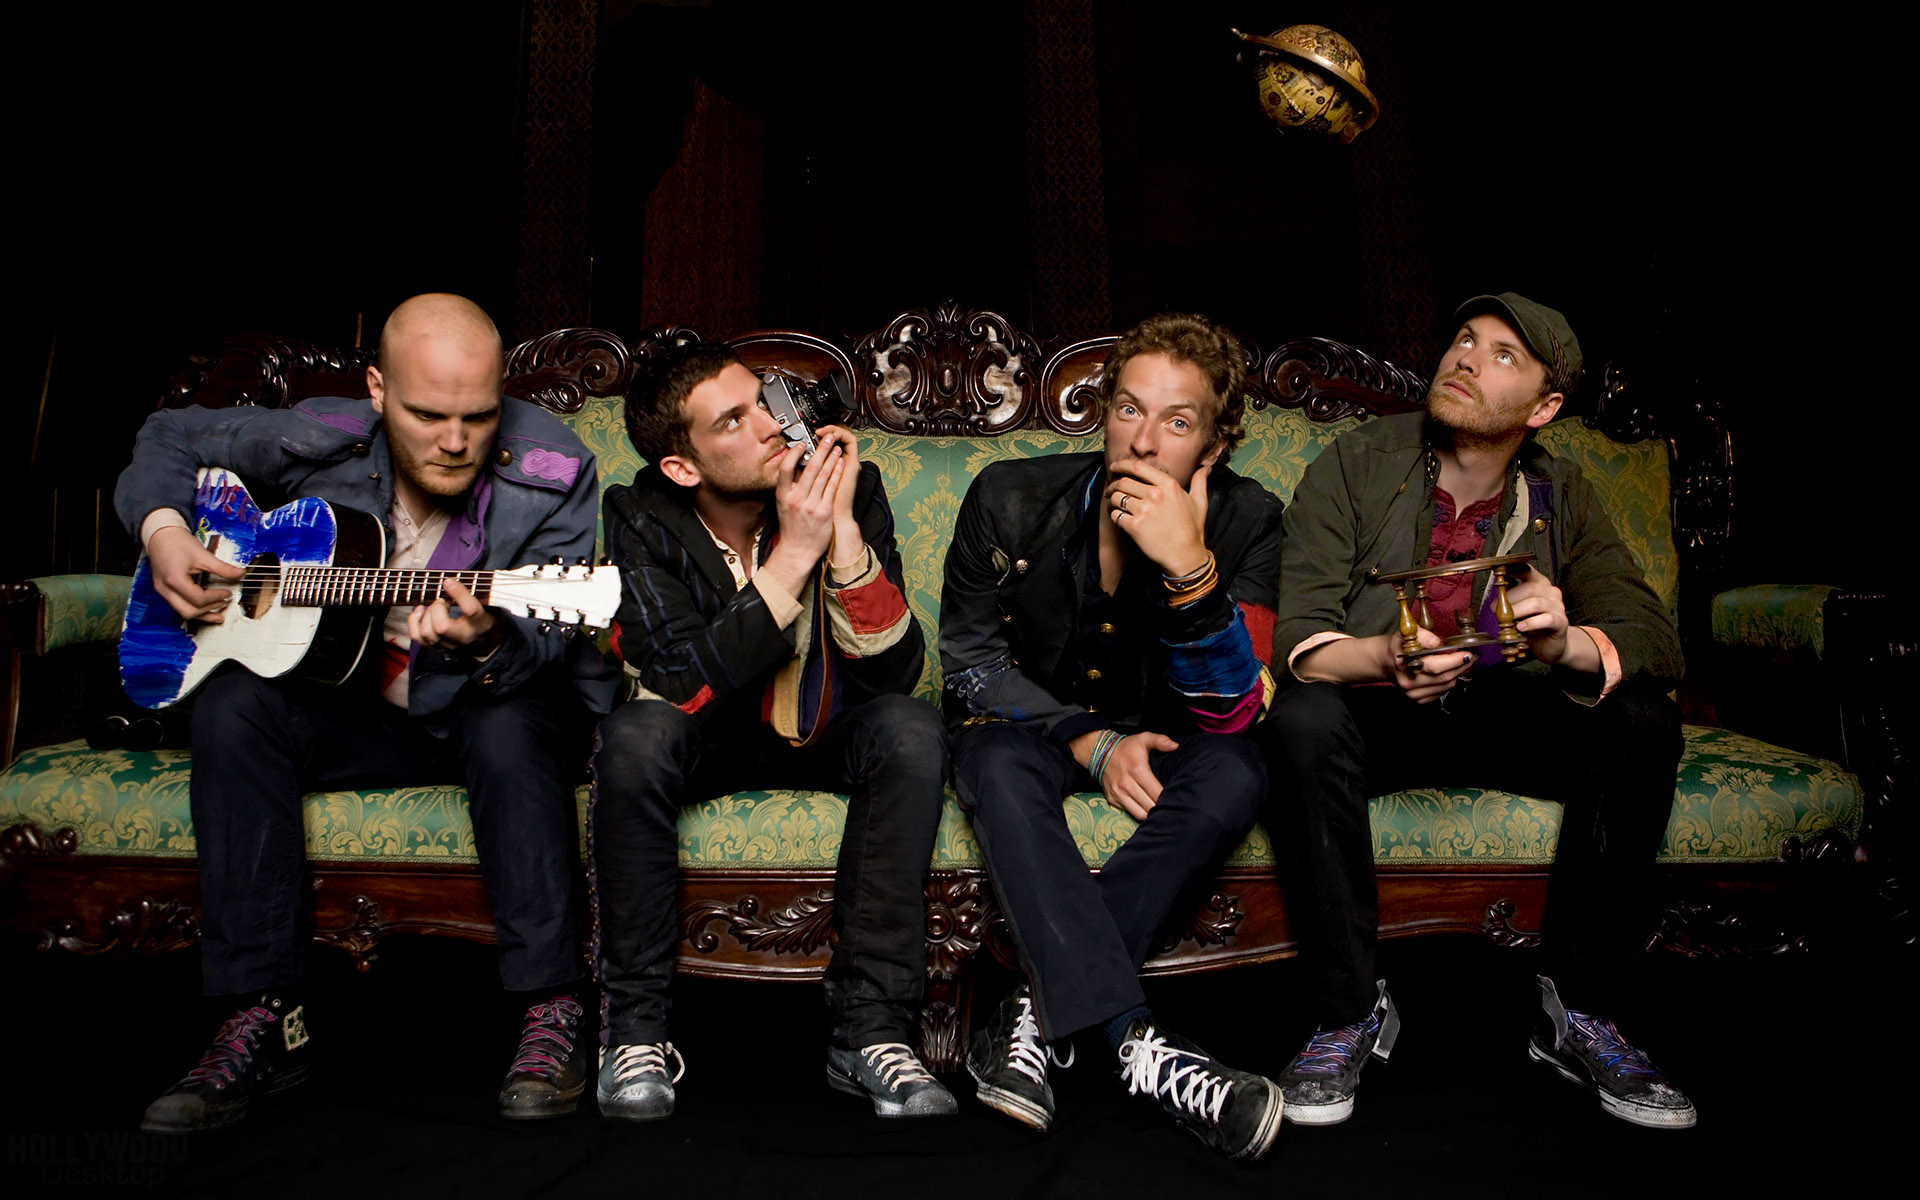 Cool Pose Coldplay Wallpaper HD